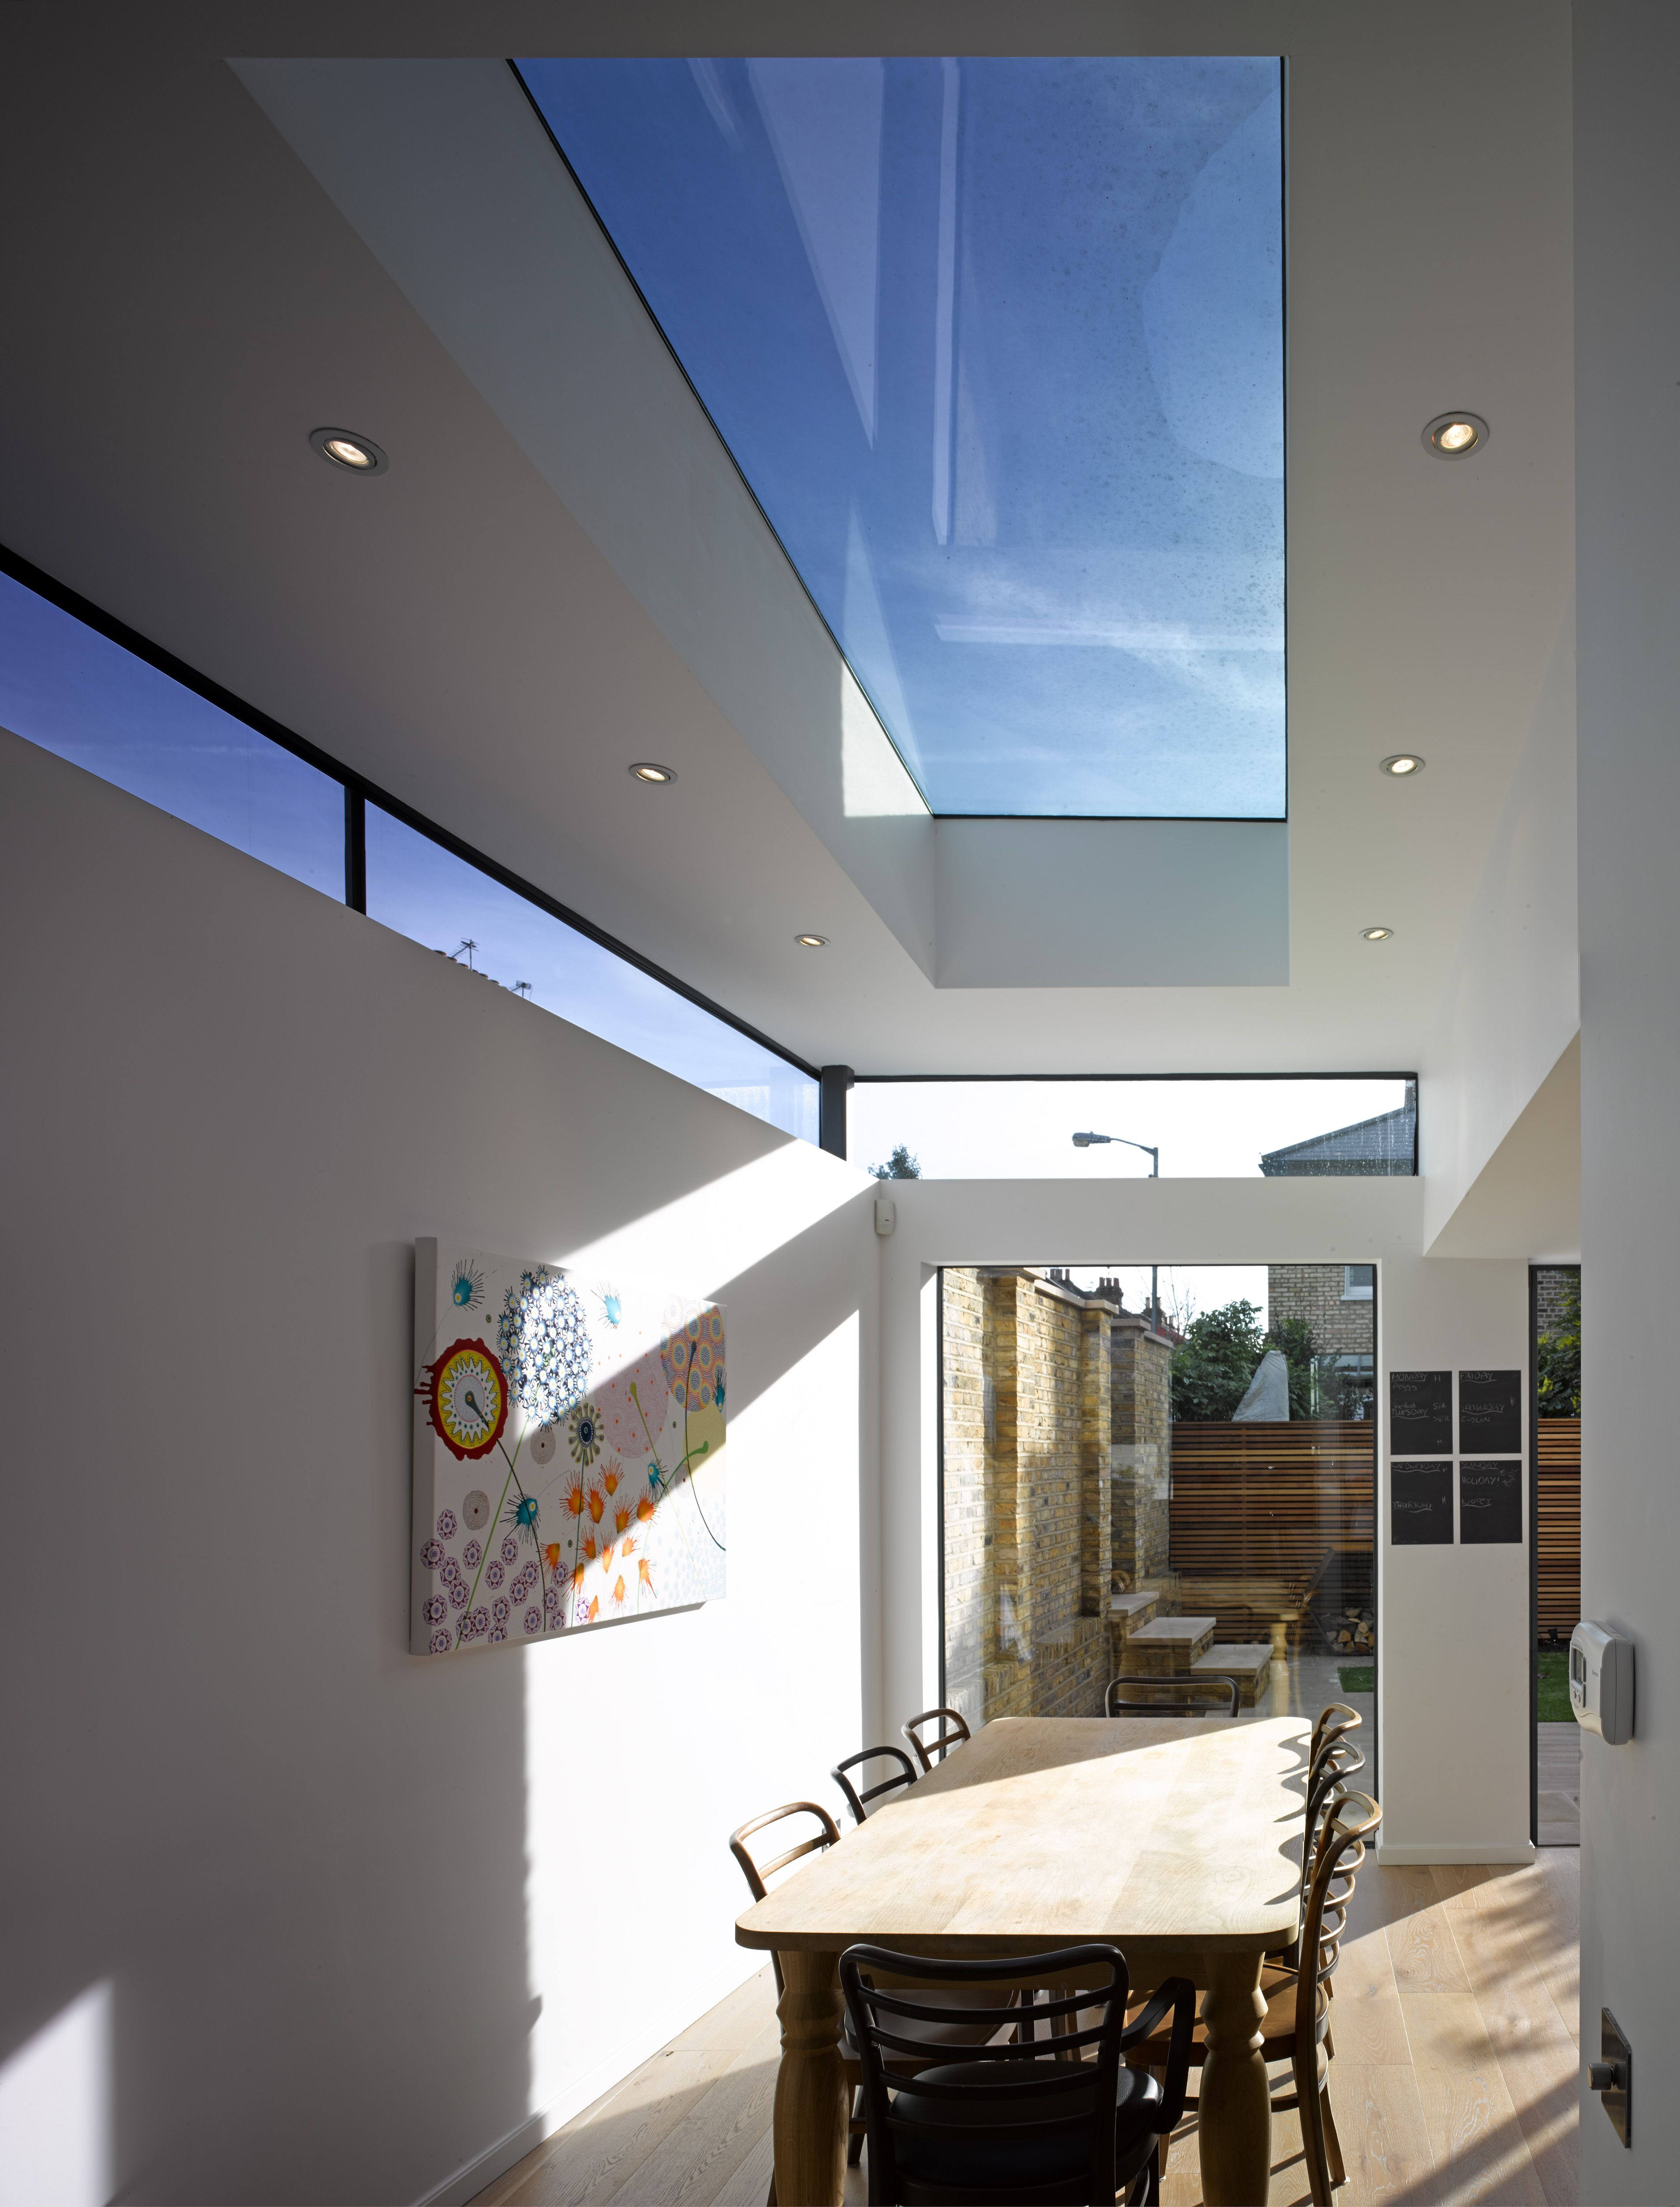 Flat extension roof idea flat roof skylights flat extension roof idea - Lovely Side Return Glass Roof How Do I Get My Builder To Install Those Glass Panels Instead Of Those Horrid 3 Or 4 Narrow V Xes